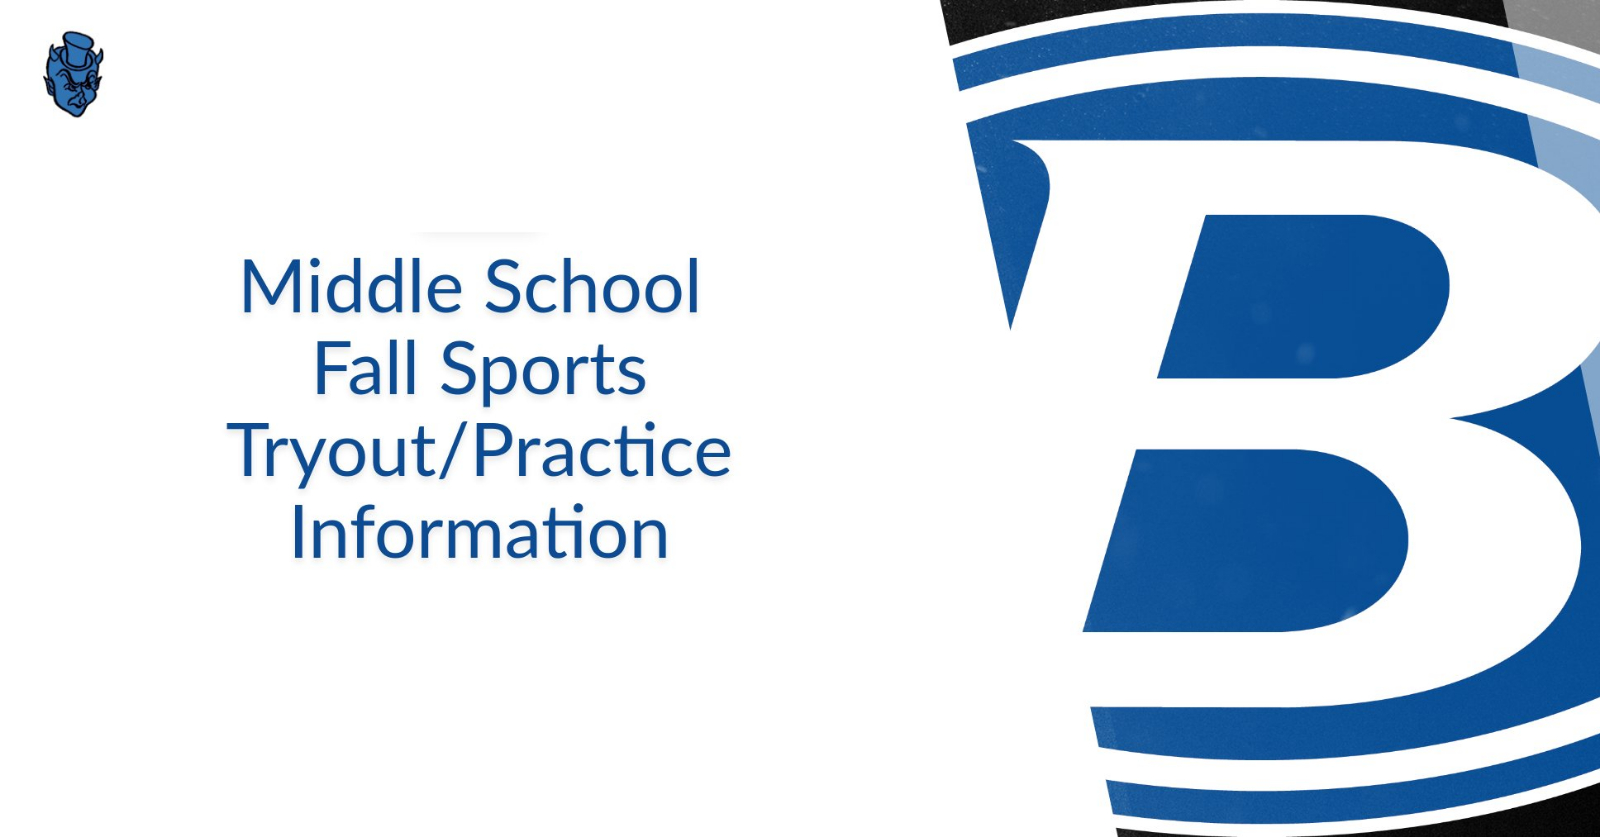 Middle School Fall Sports Tryout/Practice Information 2019